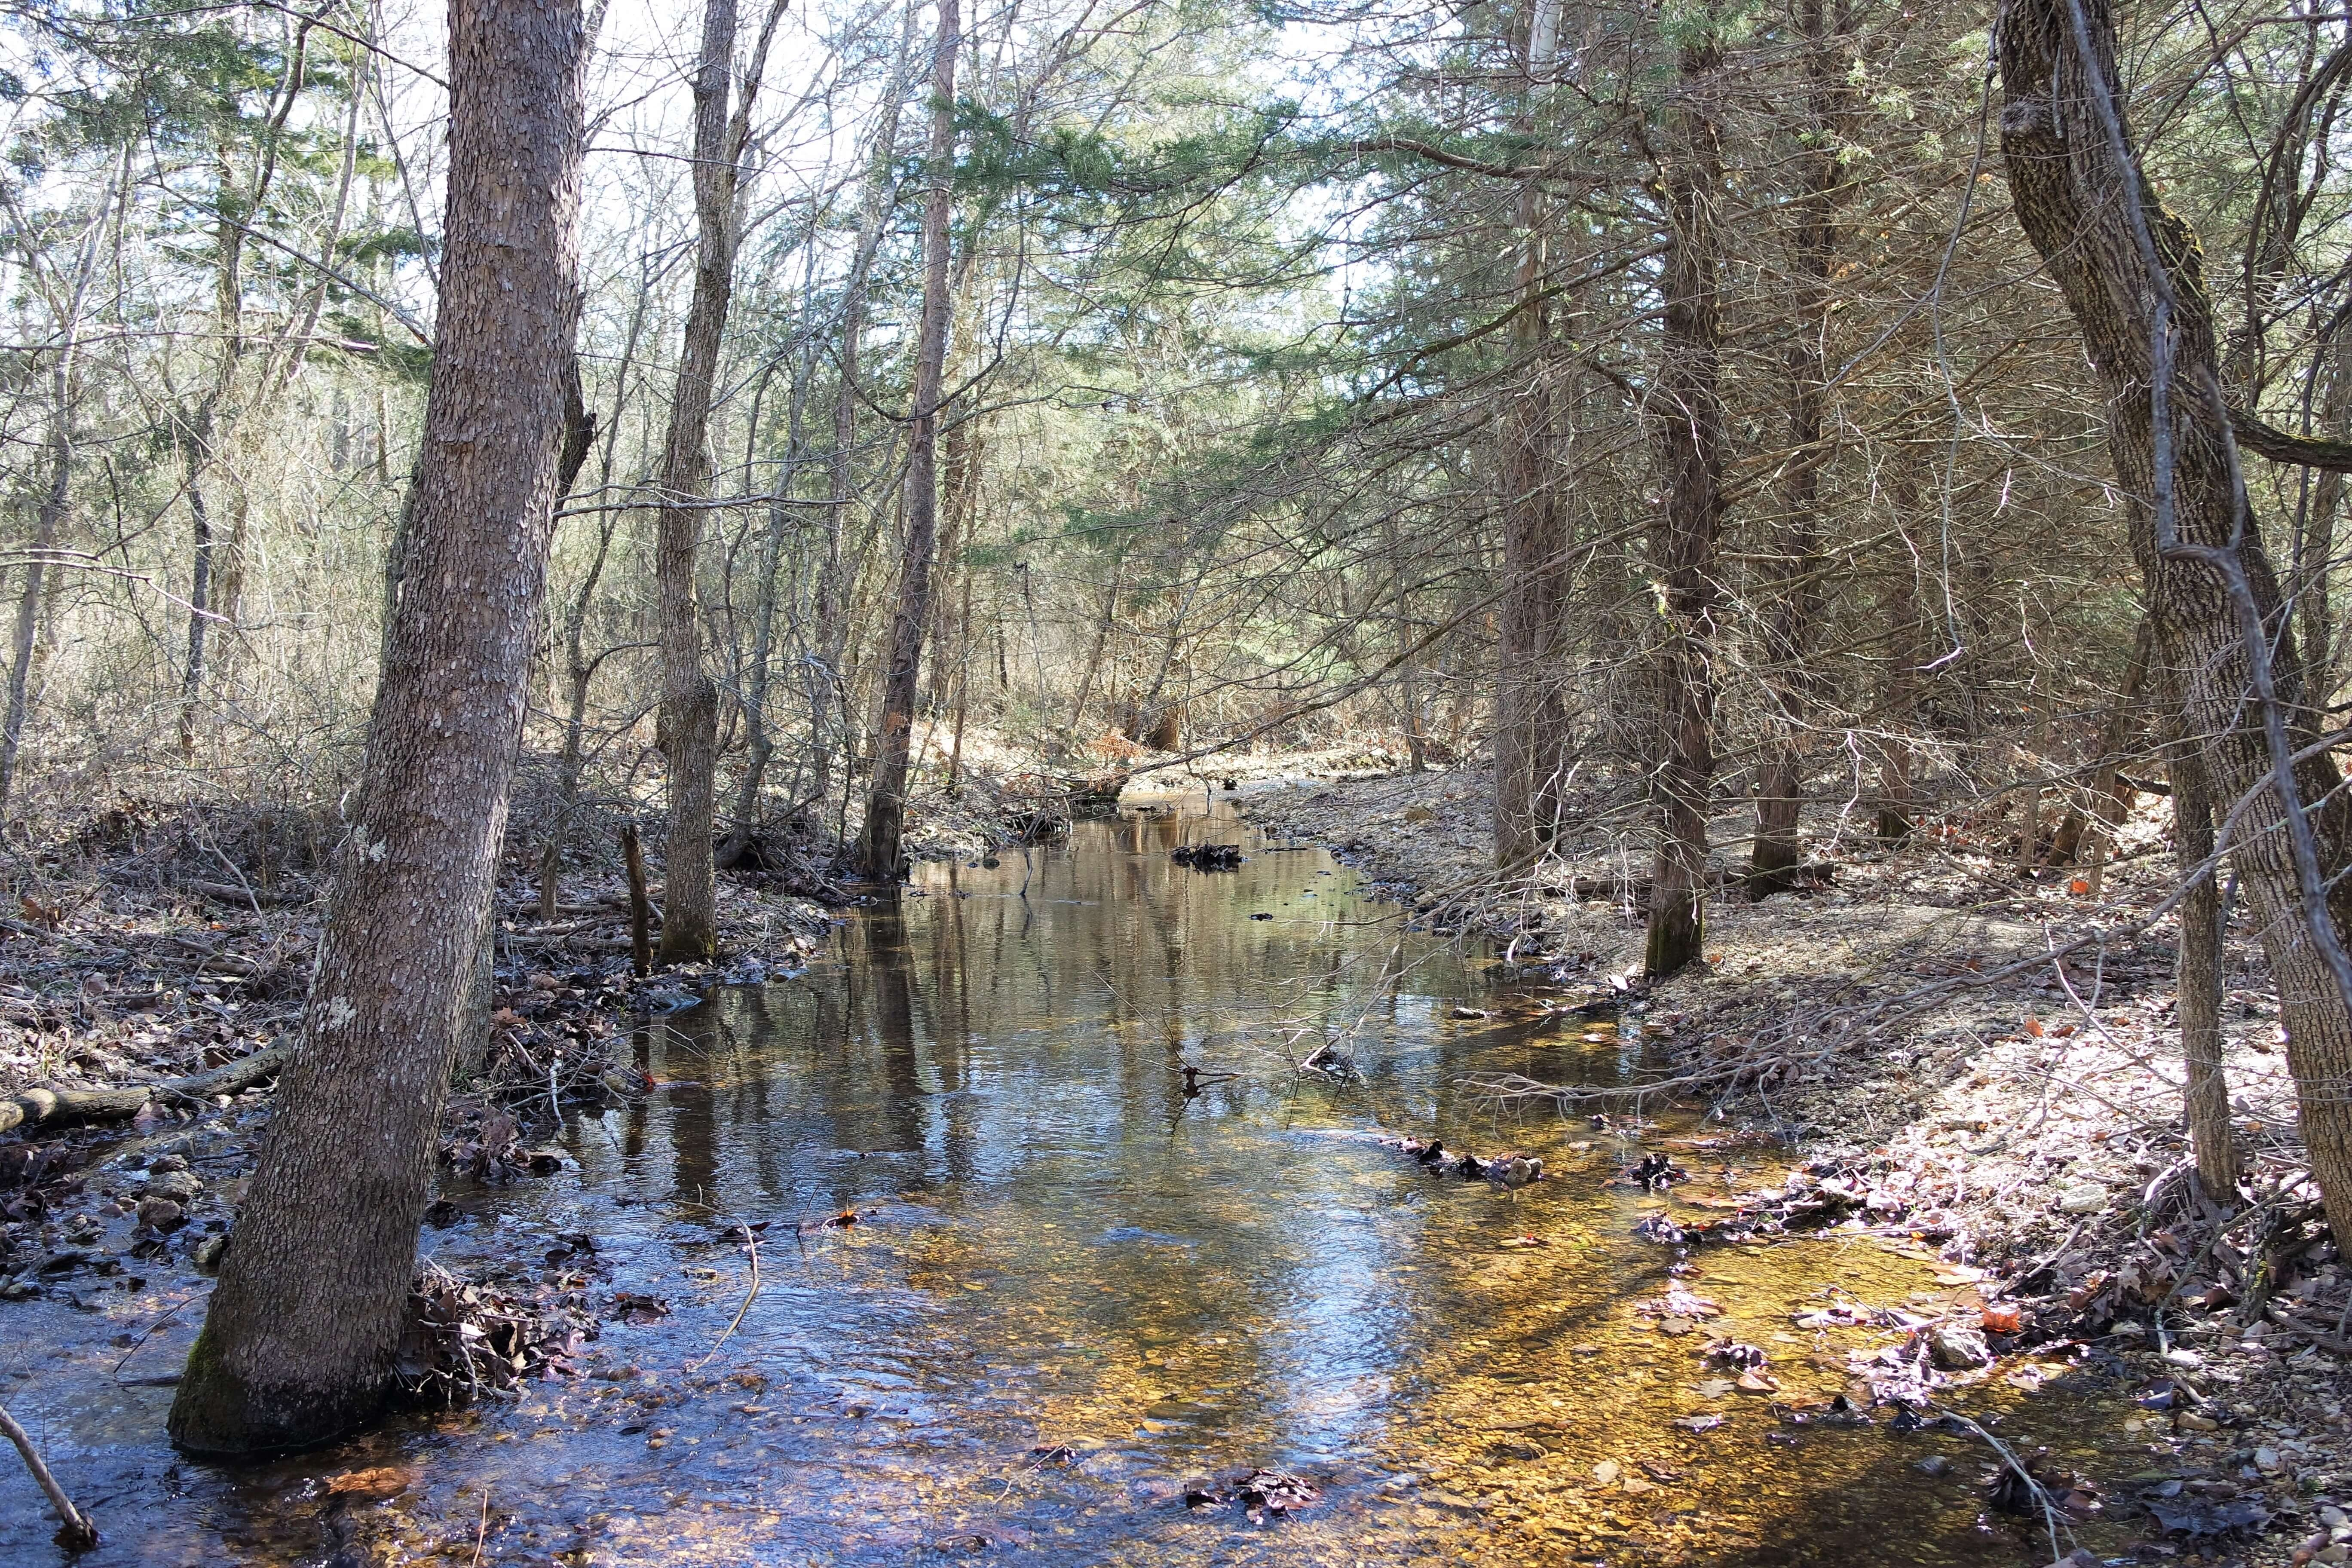 Hunting Property For Sale in South Central Missouri Ozarks